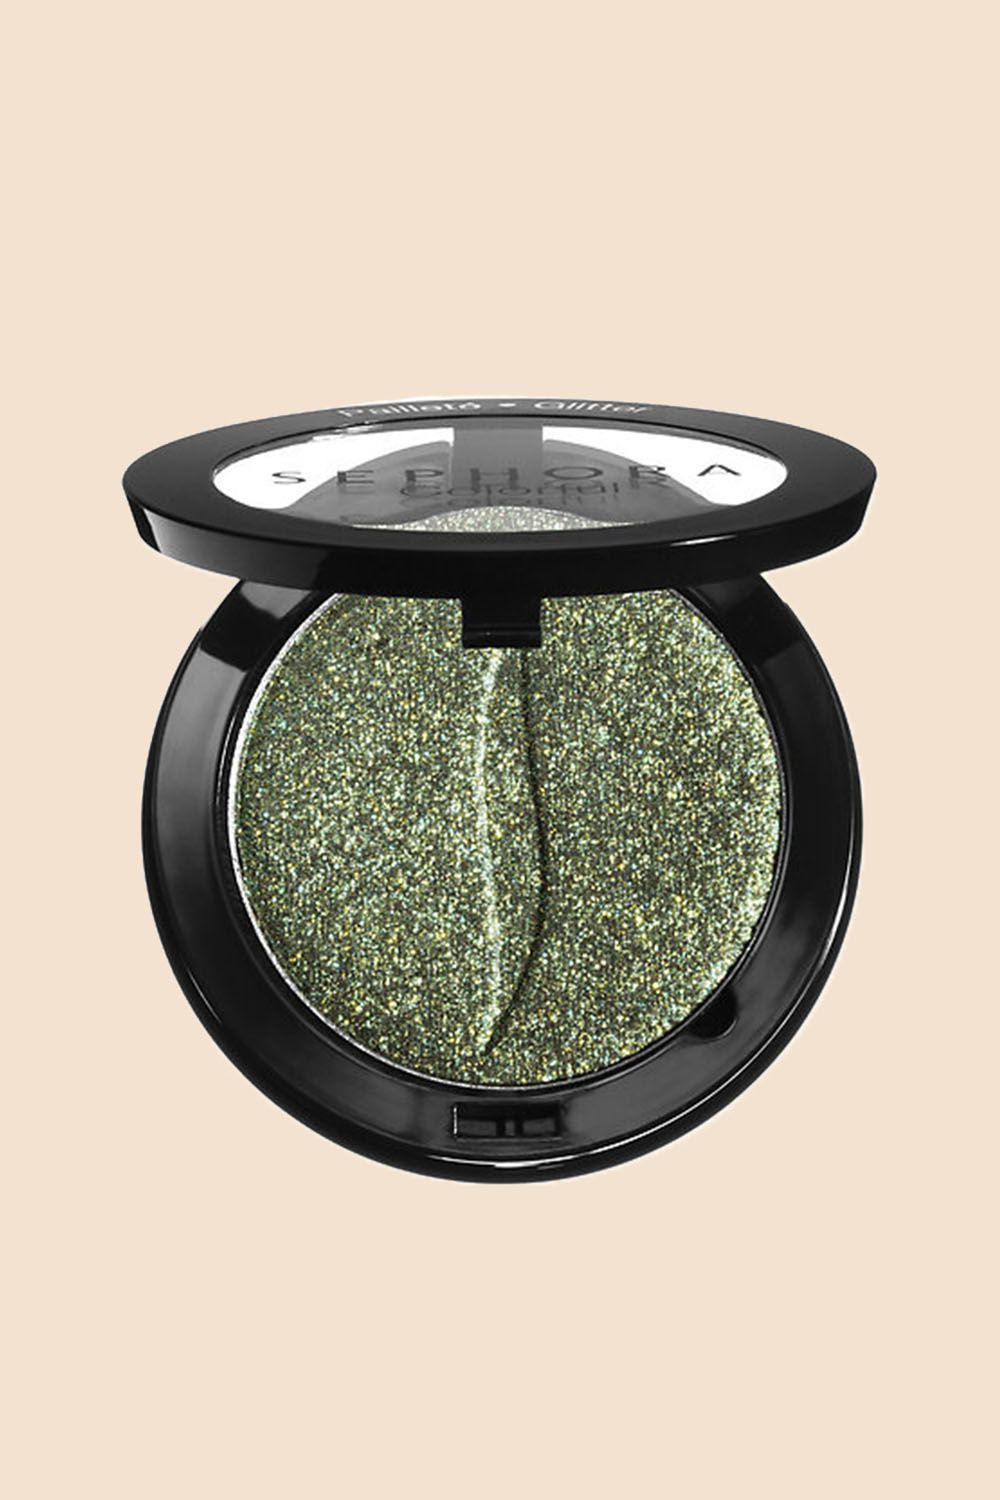 """<p>This tried-and-true, highly-pigmented formula comes in eight different glitter finishes.</p><p><span data-redactor-tag=""""span""""></span>Sephora Collection Colorful Eyeshadow Glitter Finish<span class=""""redactor-invisible-space"""" data-verified=""""redactor"""" data-redactor-tag=""""span"""" data-redactor-class=""""redactor-invisible-space"""">, $10&#x3B; <a href=""""http://bit.ly/2kBEpjs"""" target=""""_blank"""" data-tracking-id=""""recirc-text-link"""">sephora.com</a>.</span><br></p><p><span class=""""redactor-invisible-space"""" data-verified=""""redactor"""" data-redactor-tag=""""span"""" data-redactor-class=""""redactor-invisible-space""""></span></p>"""